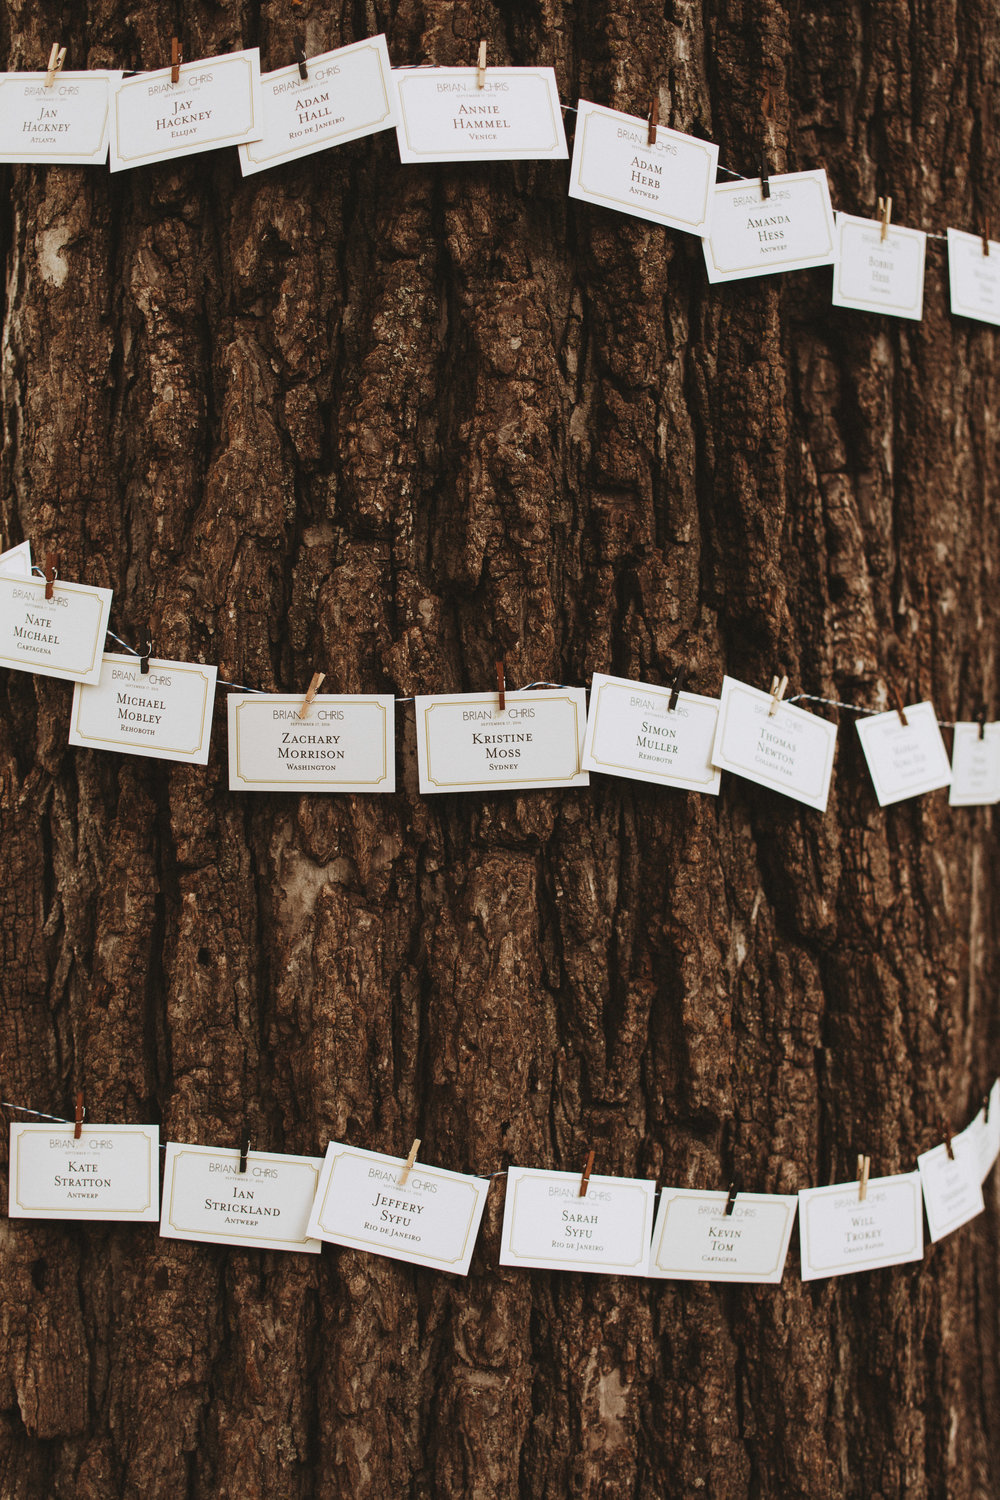 escort cards displayed on a tree